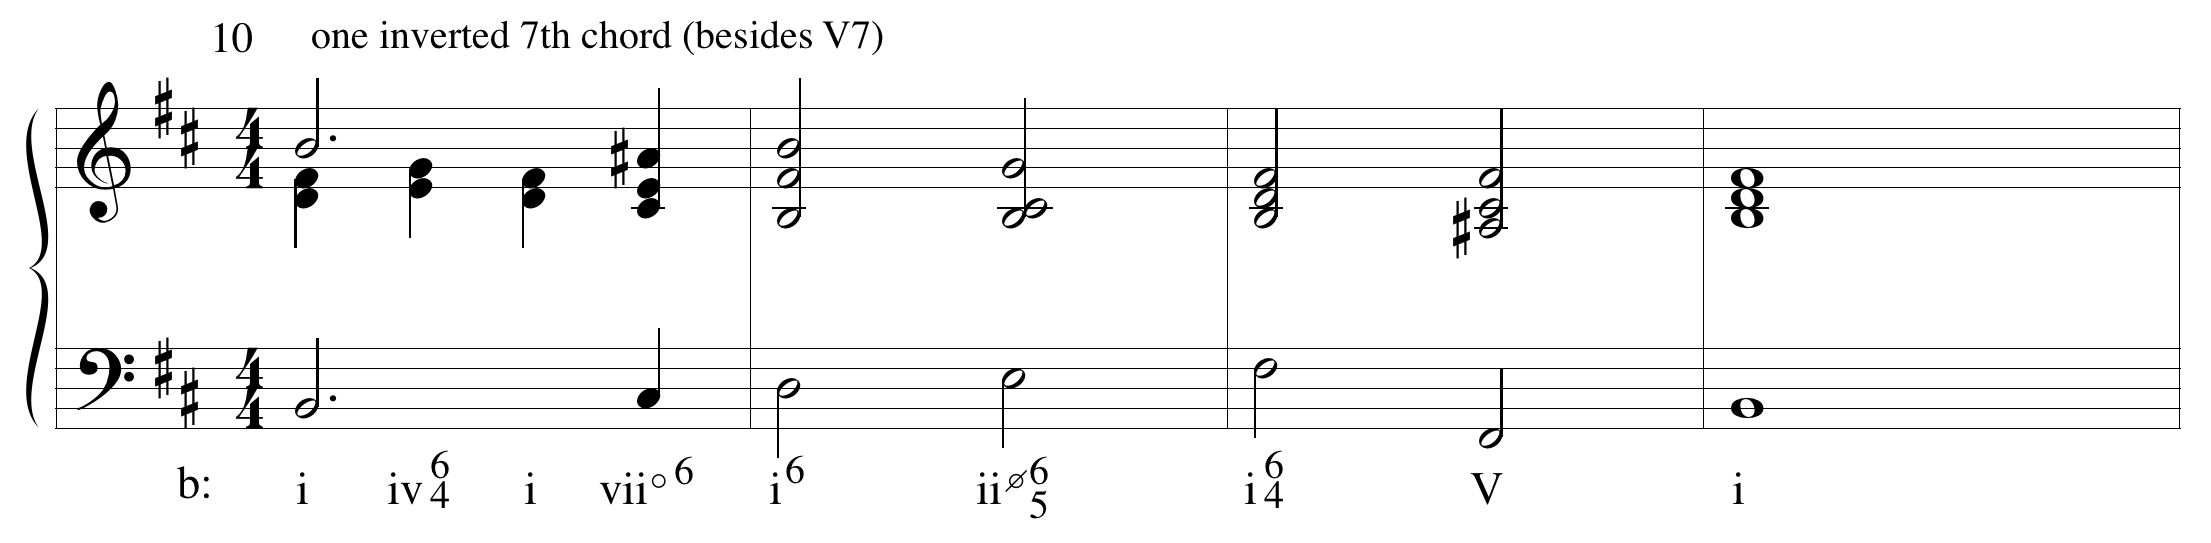 Melodic Minor Scale Solfege